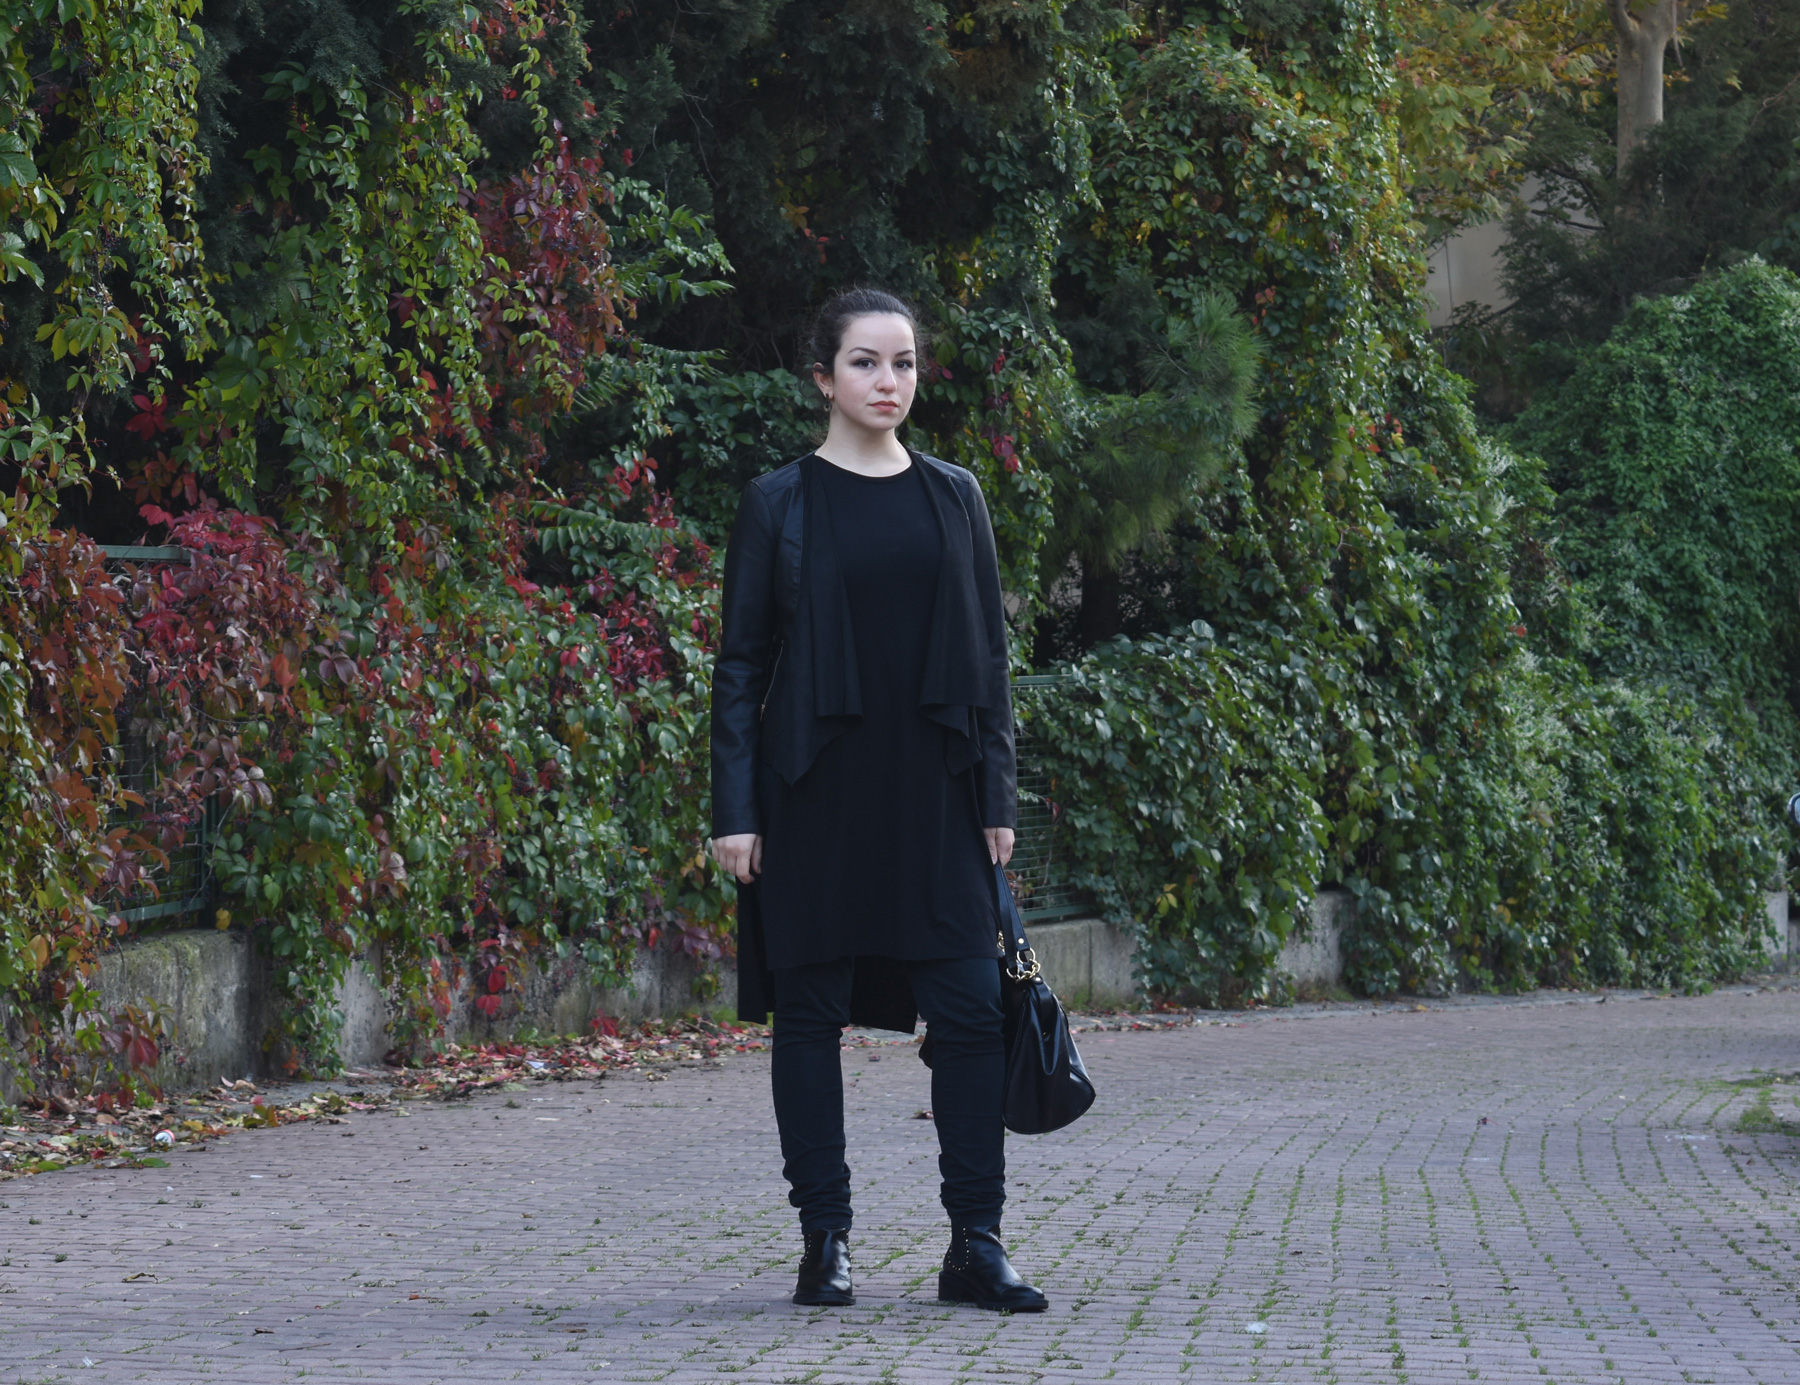 sevgin goktas ozsan all black stradivarious waterfall jacket autumn fall winter bershka top DSC_2135